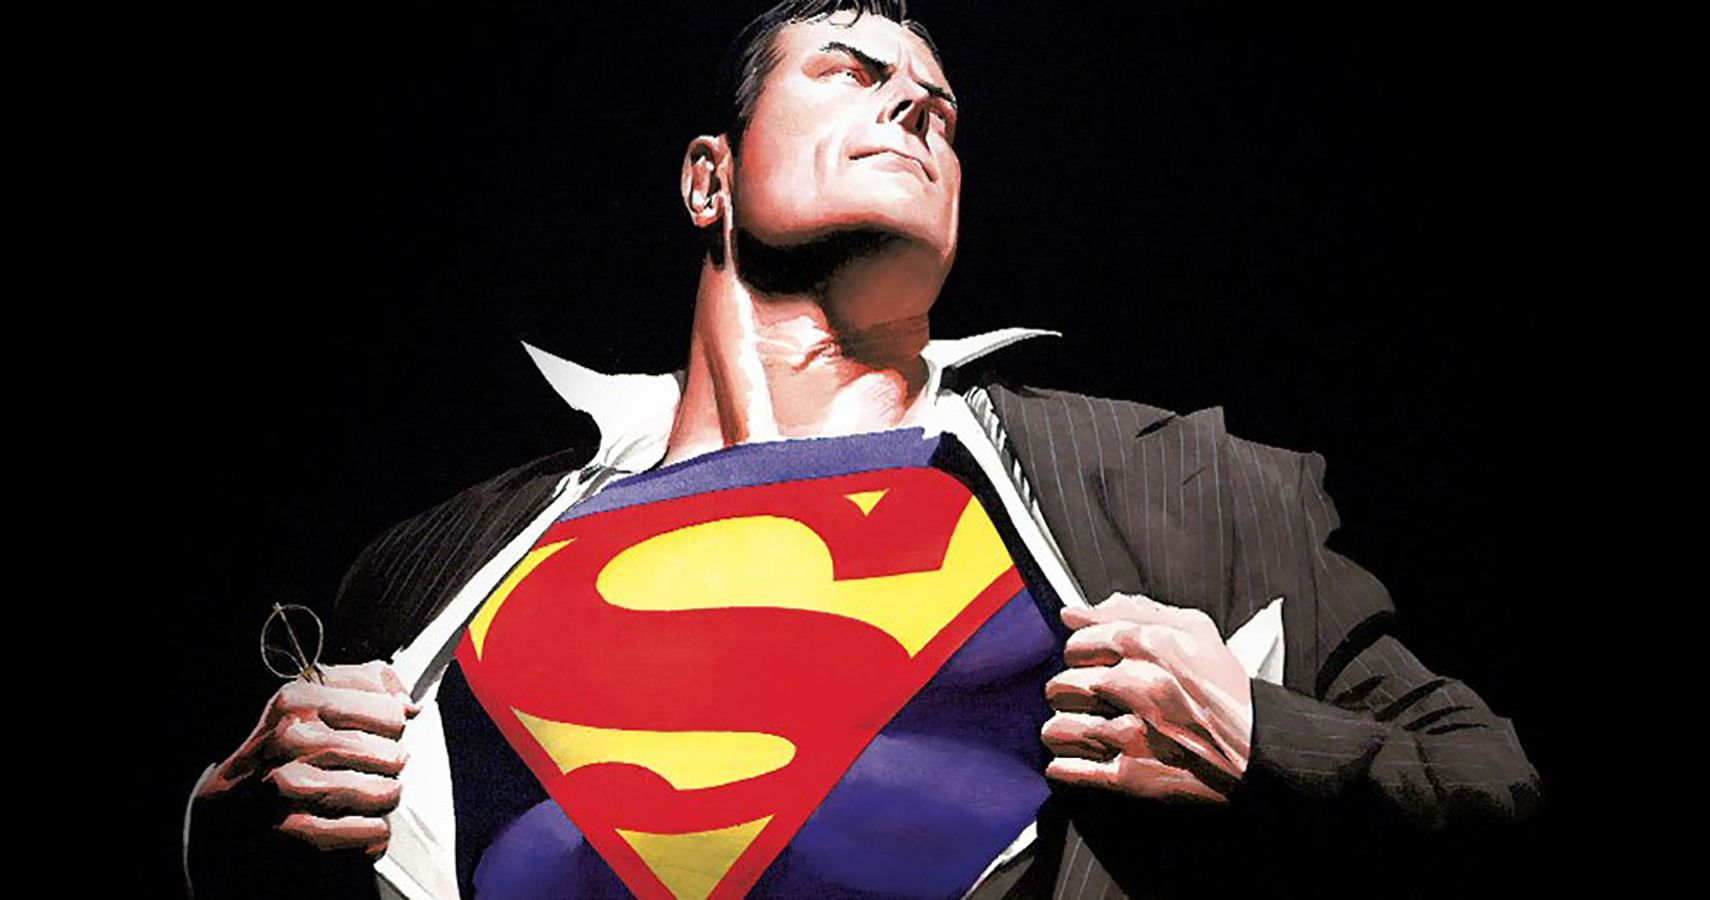 Superman Is More Relevant Than Ever - So Why Can't Movies Get Him Right?